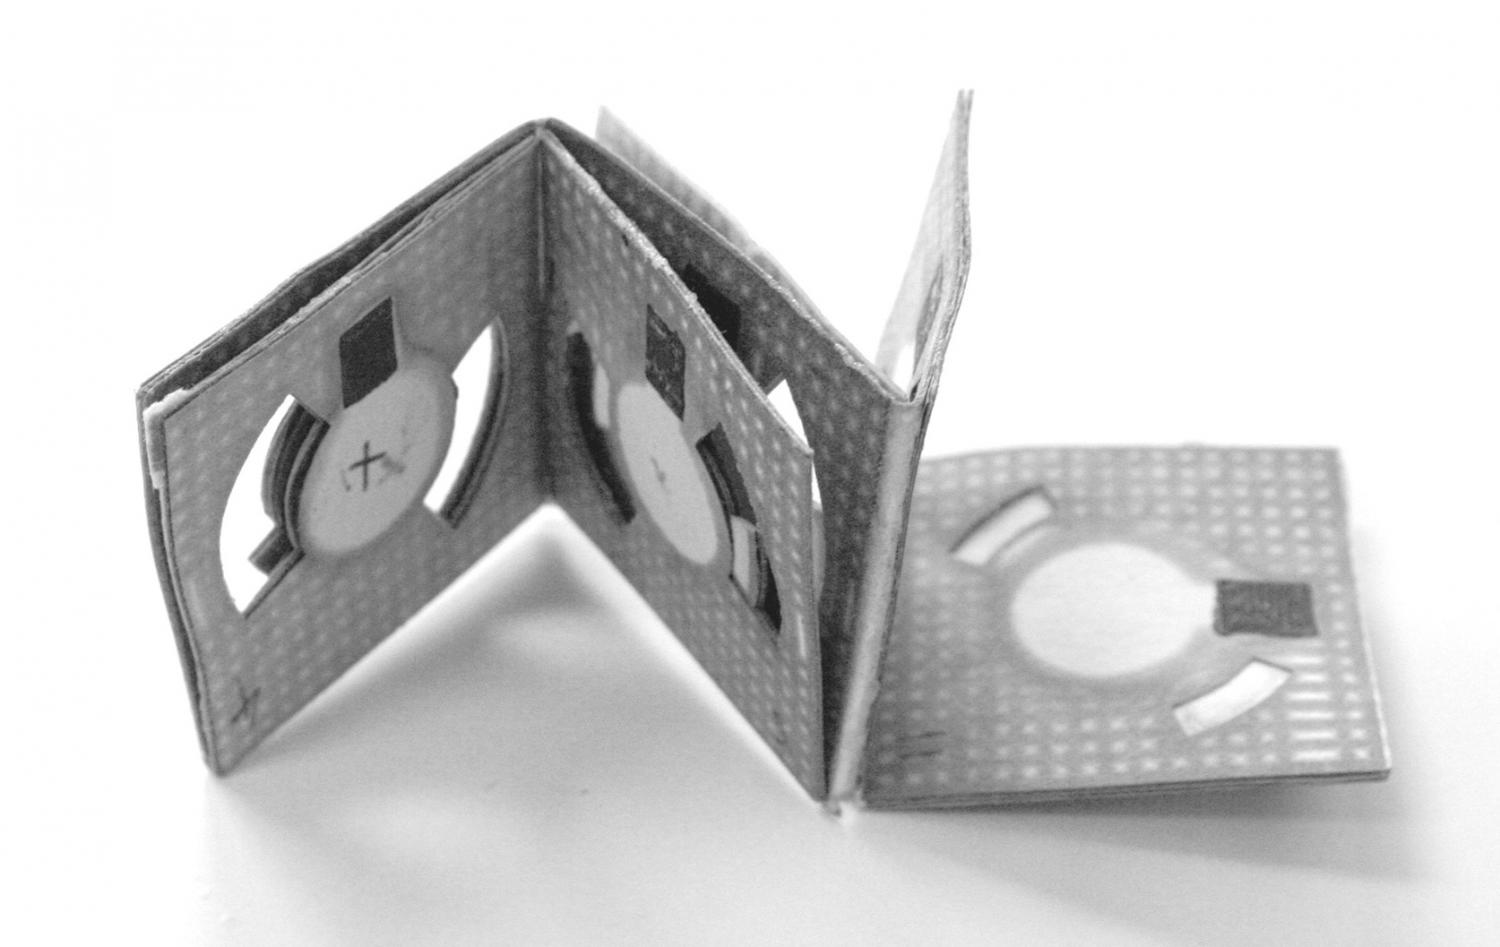 Origami Batteries Like This One Developed By Binghamton University Researcher Seokheun Choi Could Day Power Biosensors For Use In Remote Locations